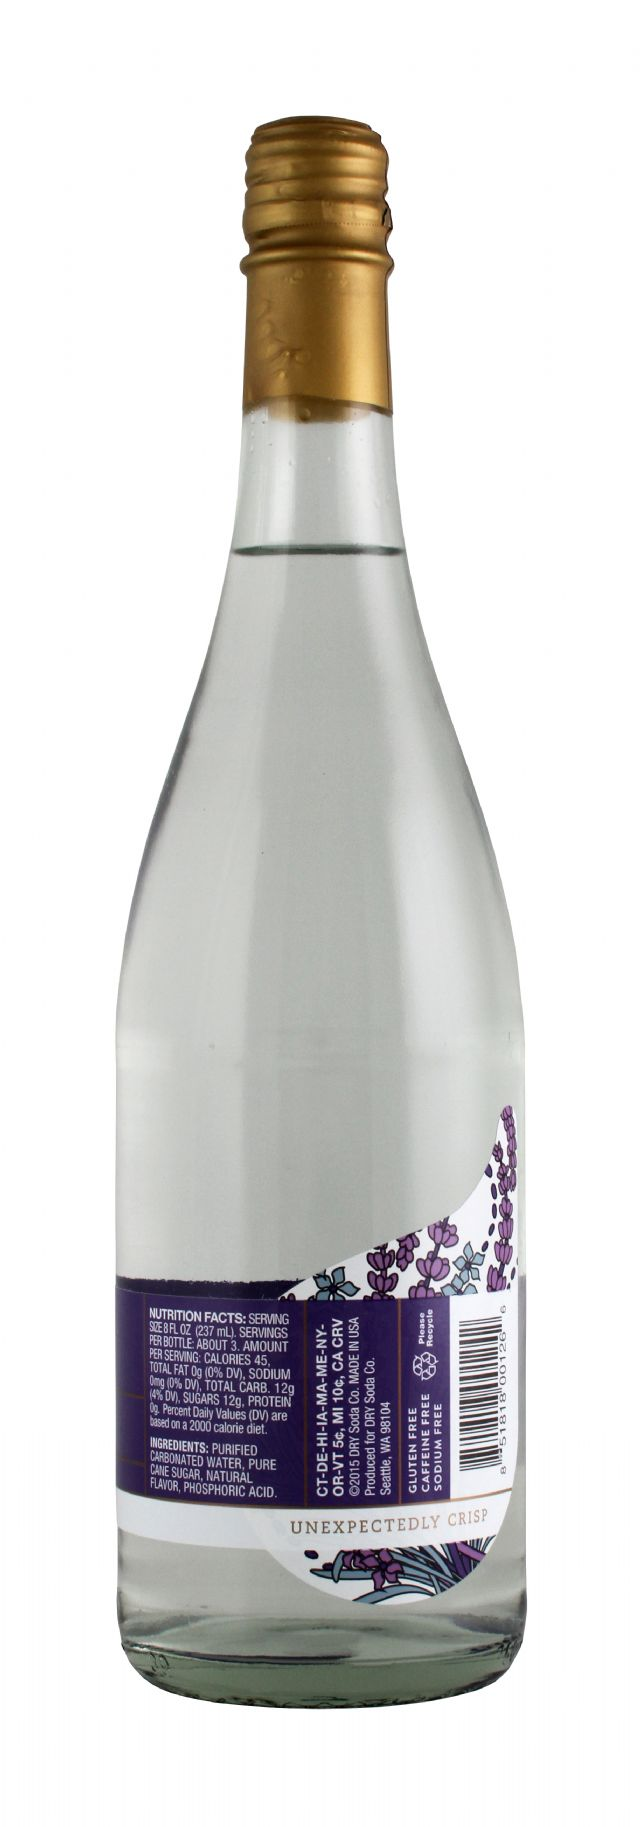 DRY Sparkling: Dry Lavander Facts